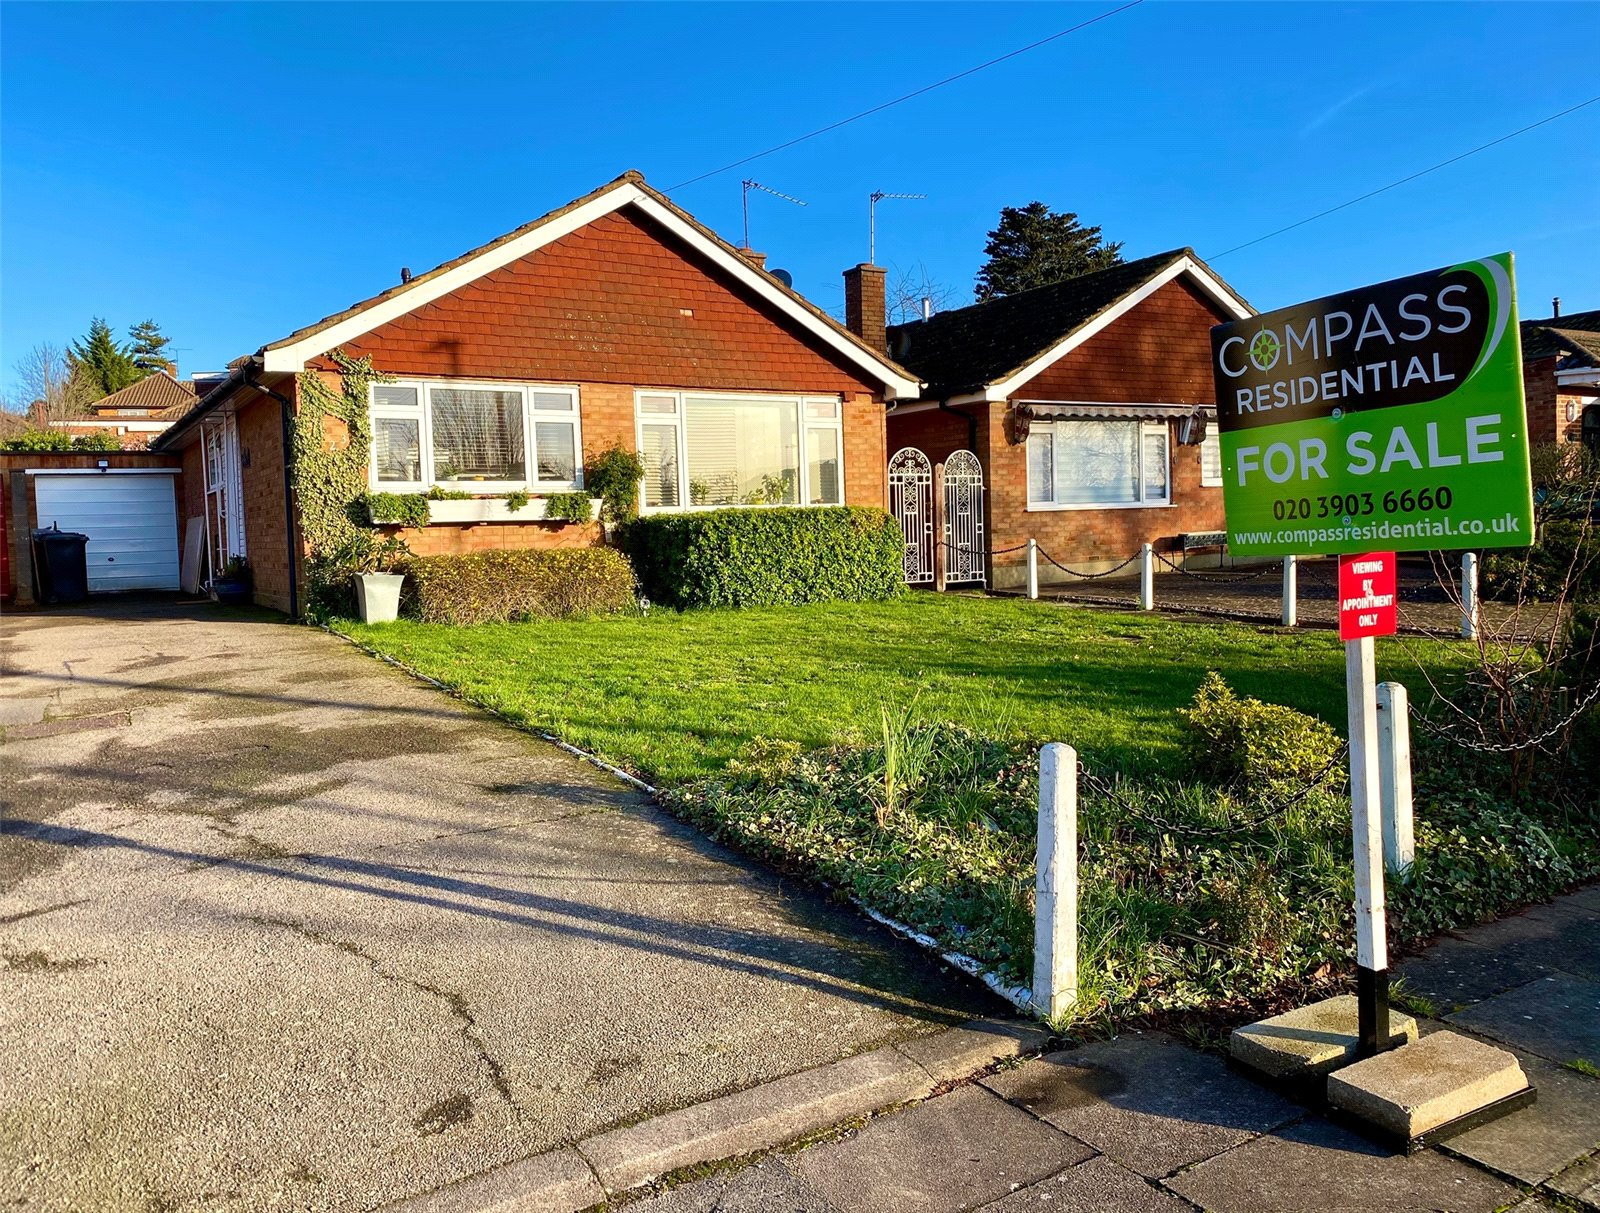 2 bed bungalow for sale in Barnet, EN4 9QT - Property Image 1